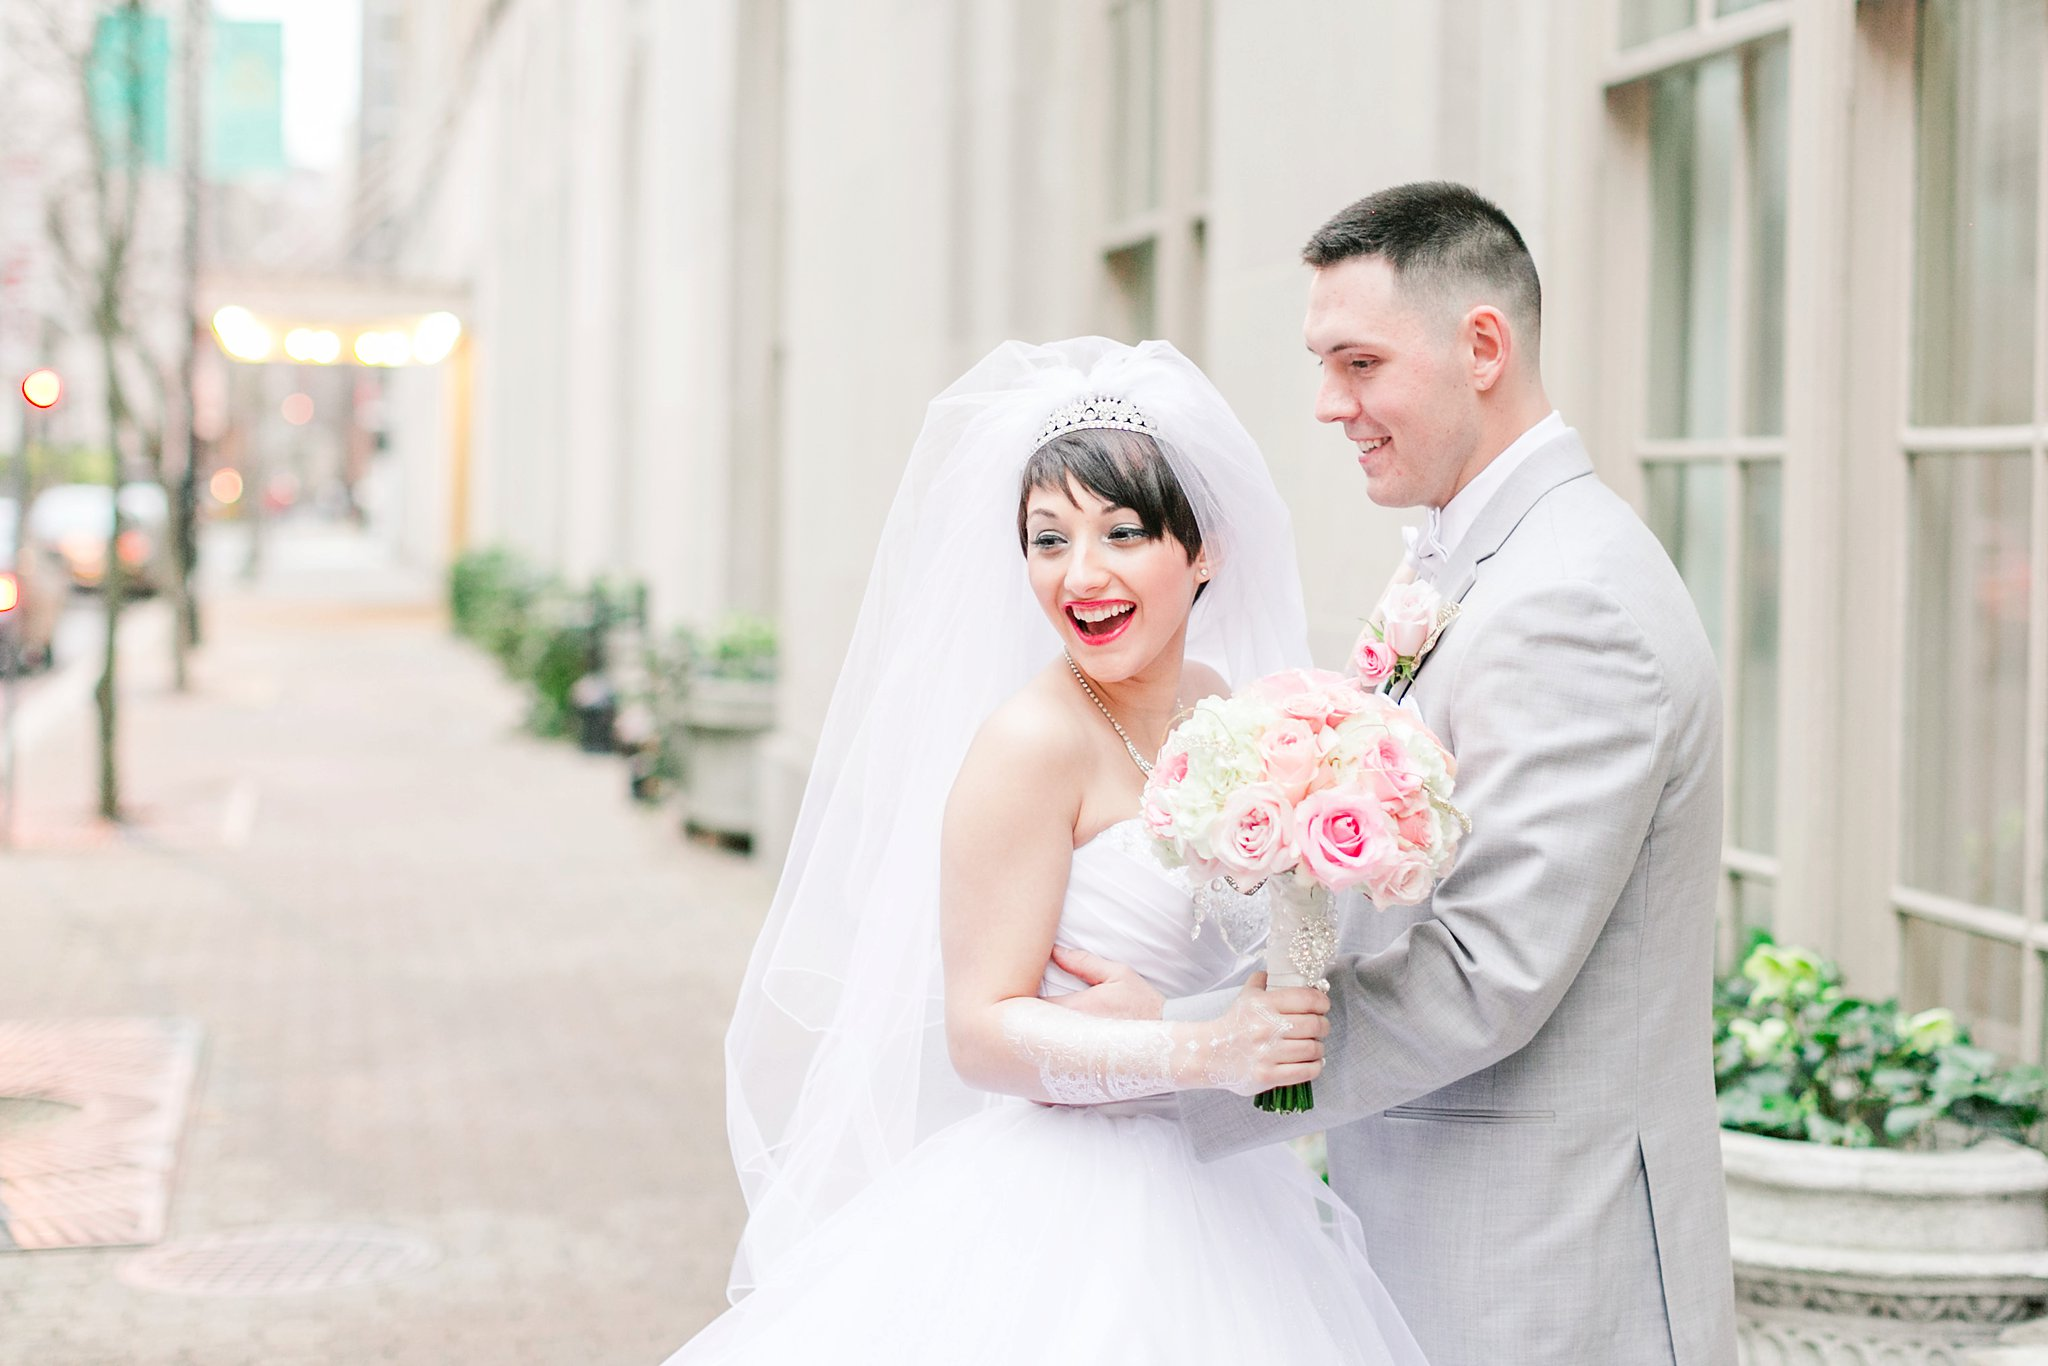 Mayflower Hotel Wedding Photos DC Pink & Gold Winter Wedding Tori & Tyler-105_photo.jpg